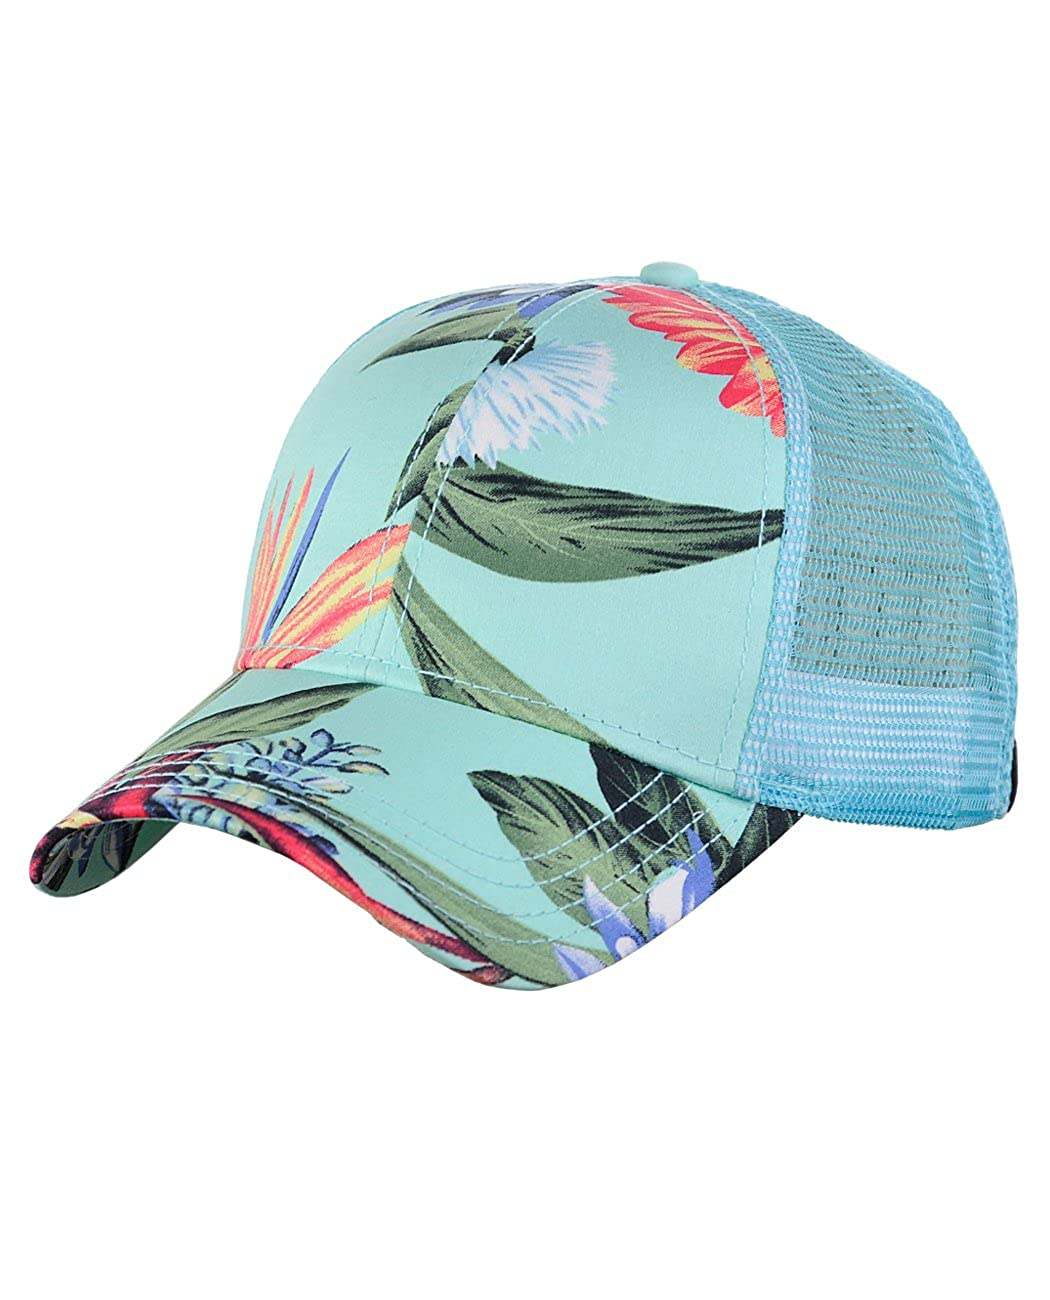 huge selection of d264d 8c032 Brim  2.75